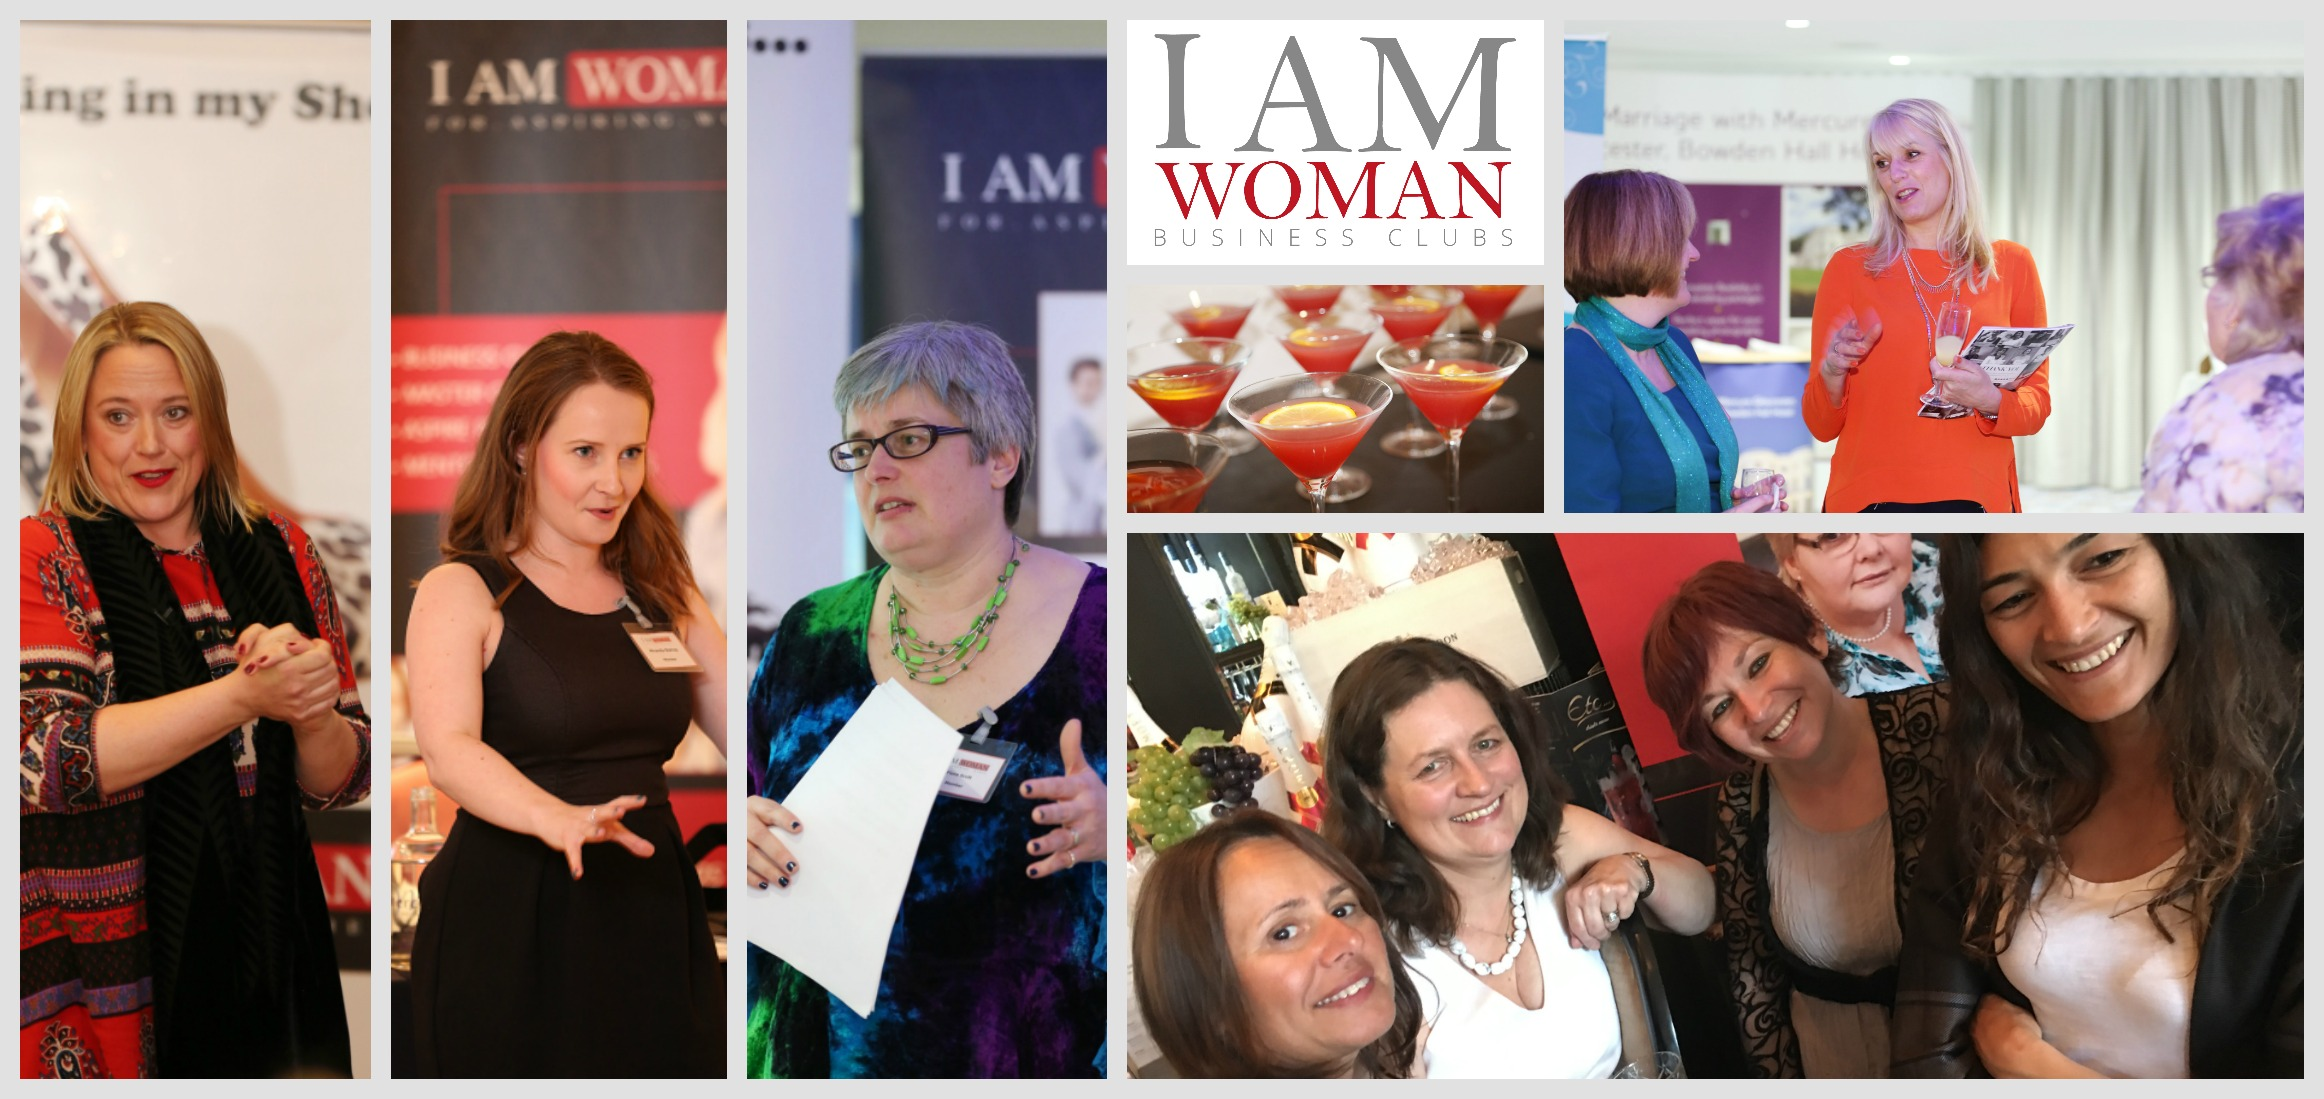 I AM WOMAN business clubs